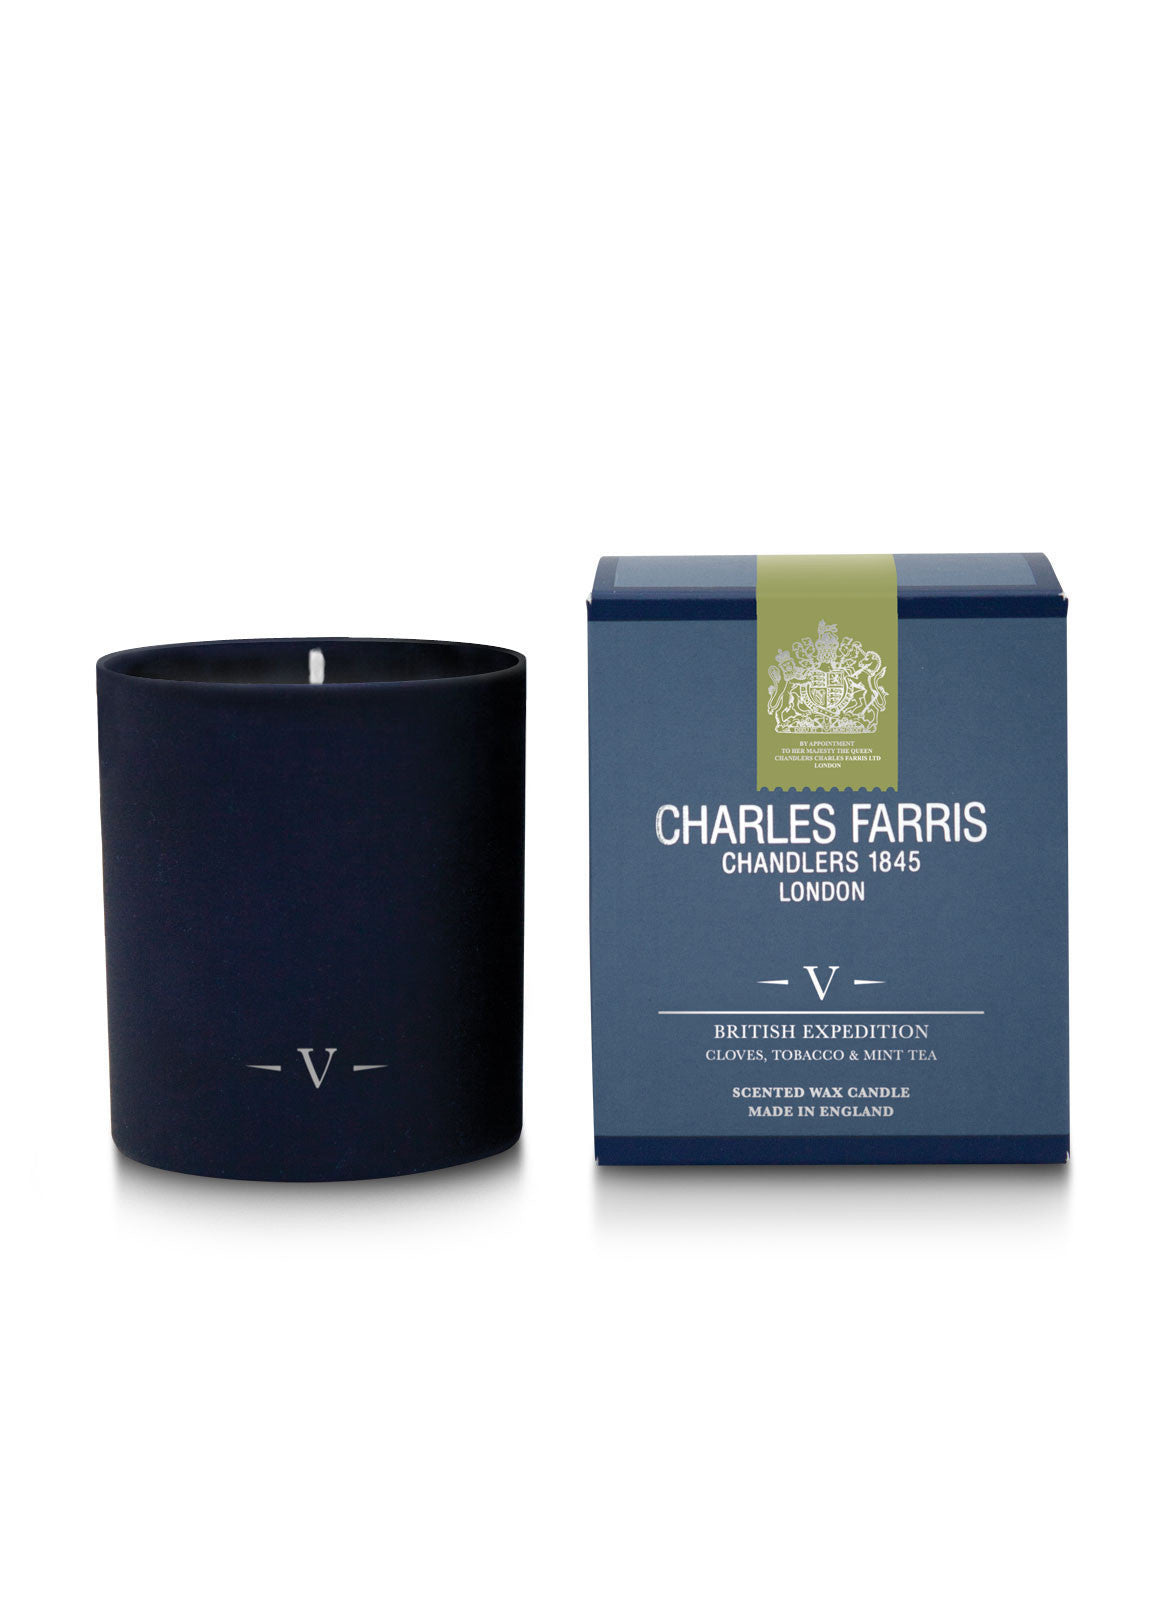 British Expedition Scented Candle | Cloves, Tobacco & Mint Tea